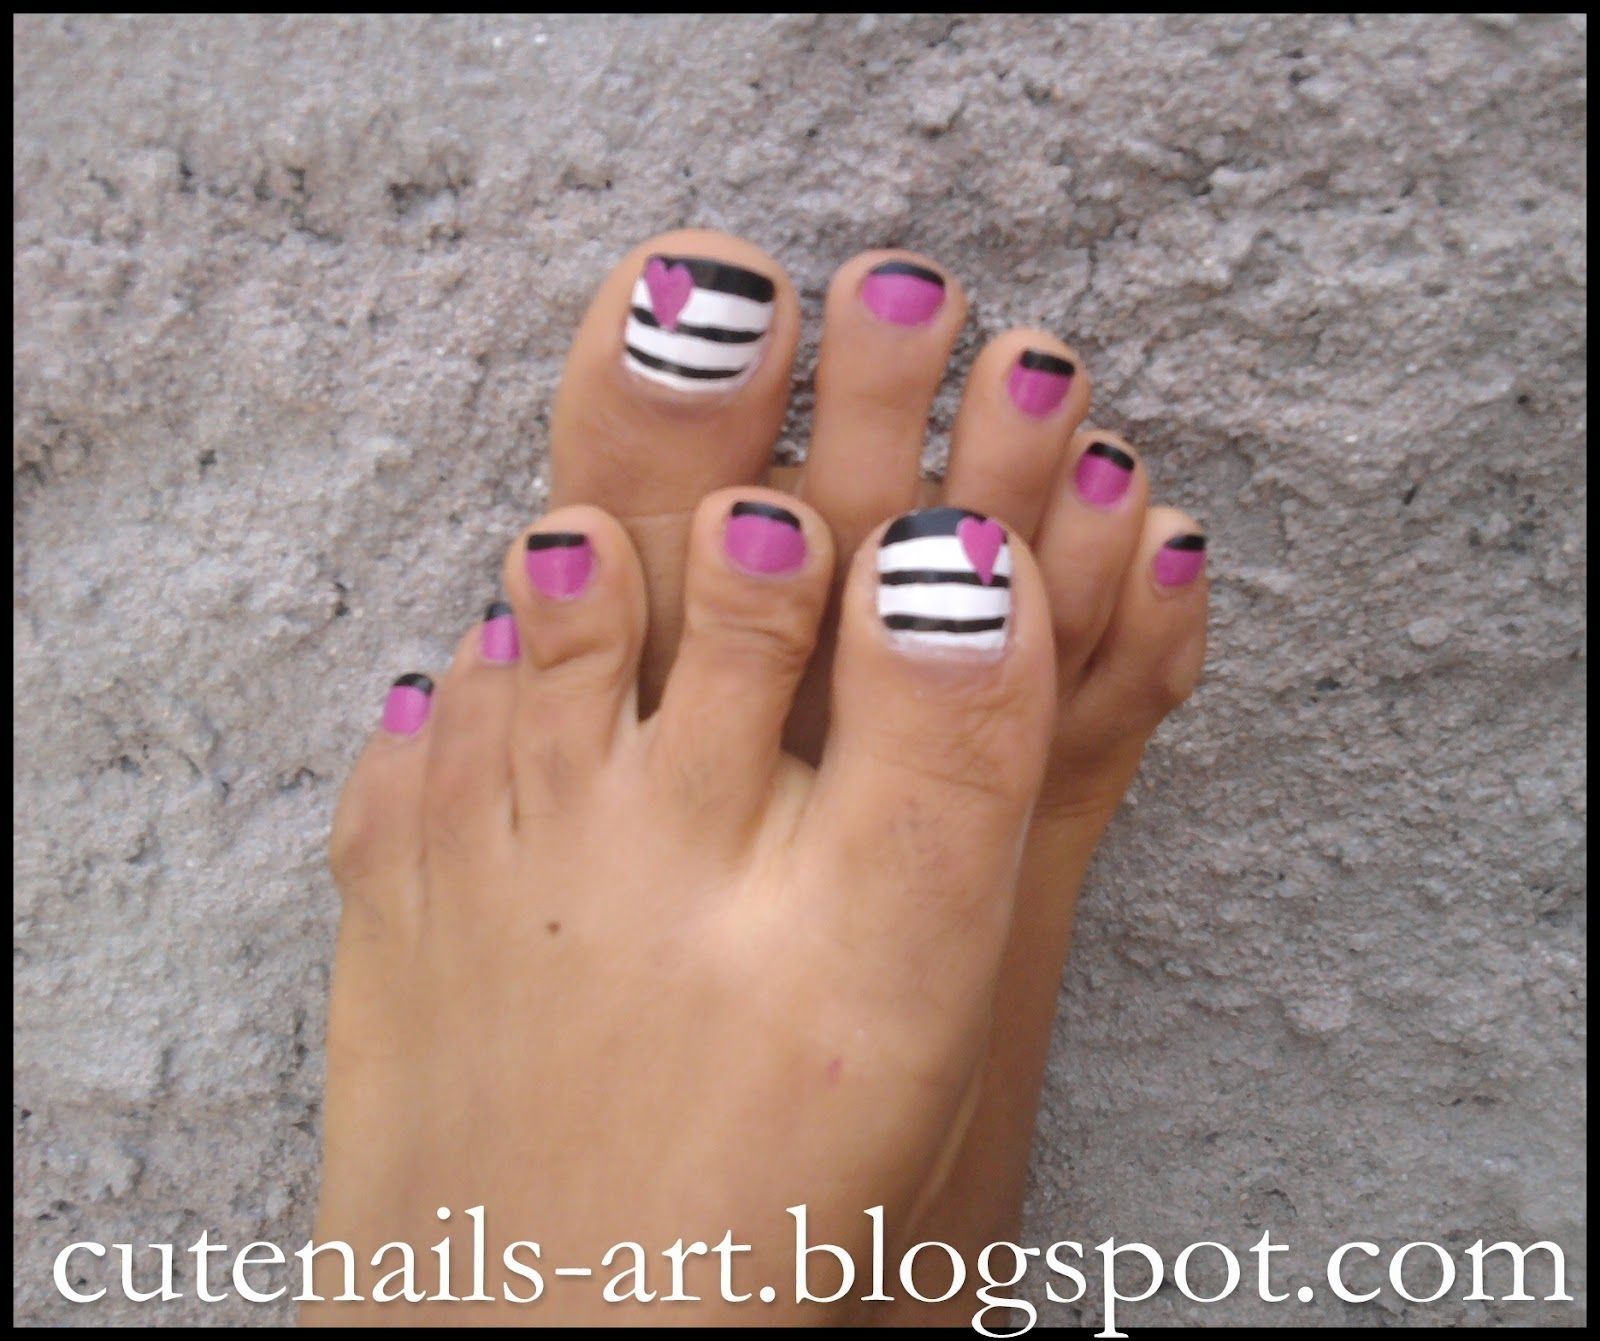 Pin by Wendy Attaway on Funky Toes | Pinterest